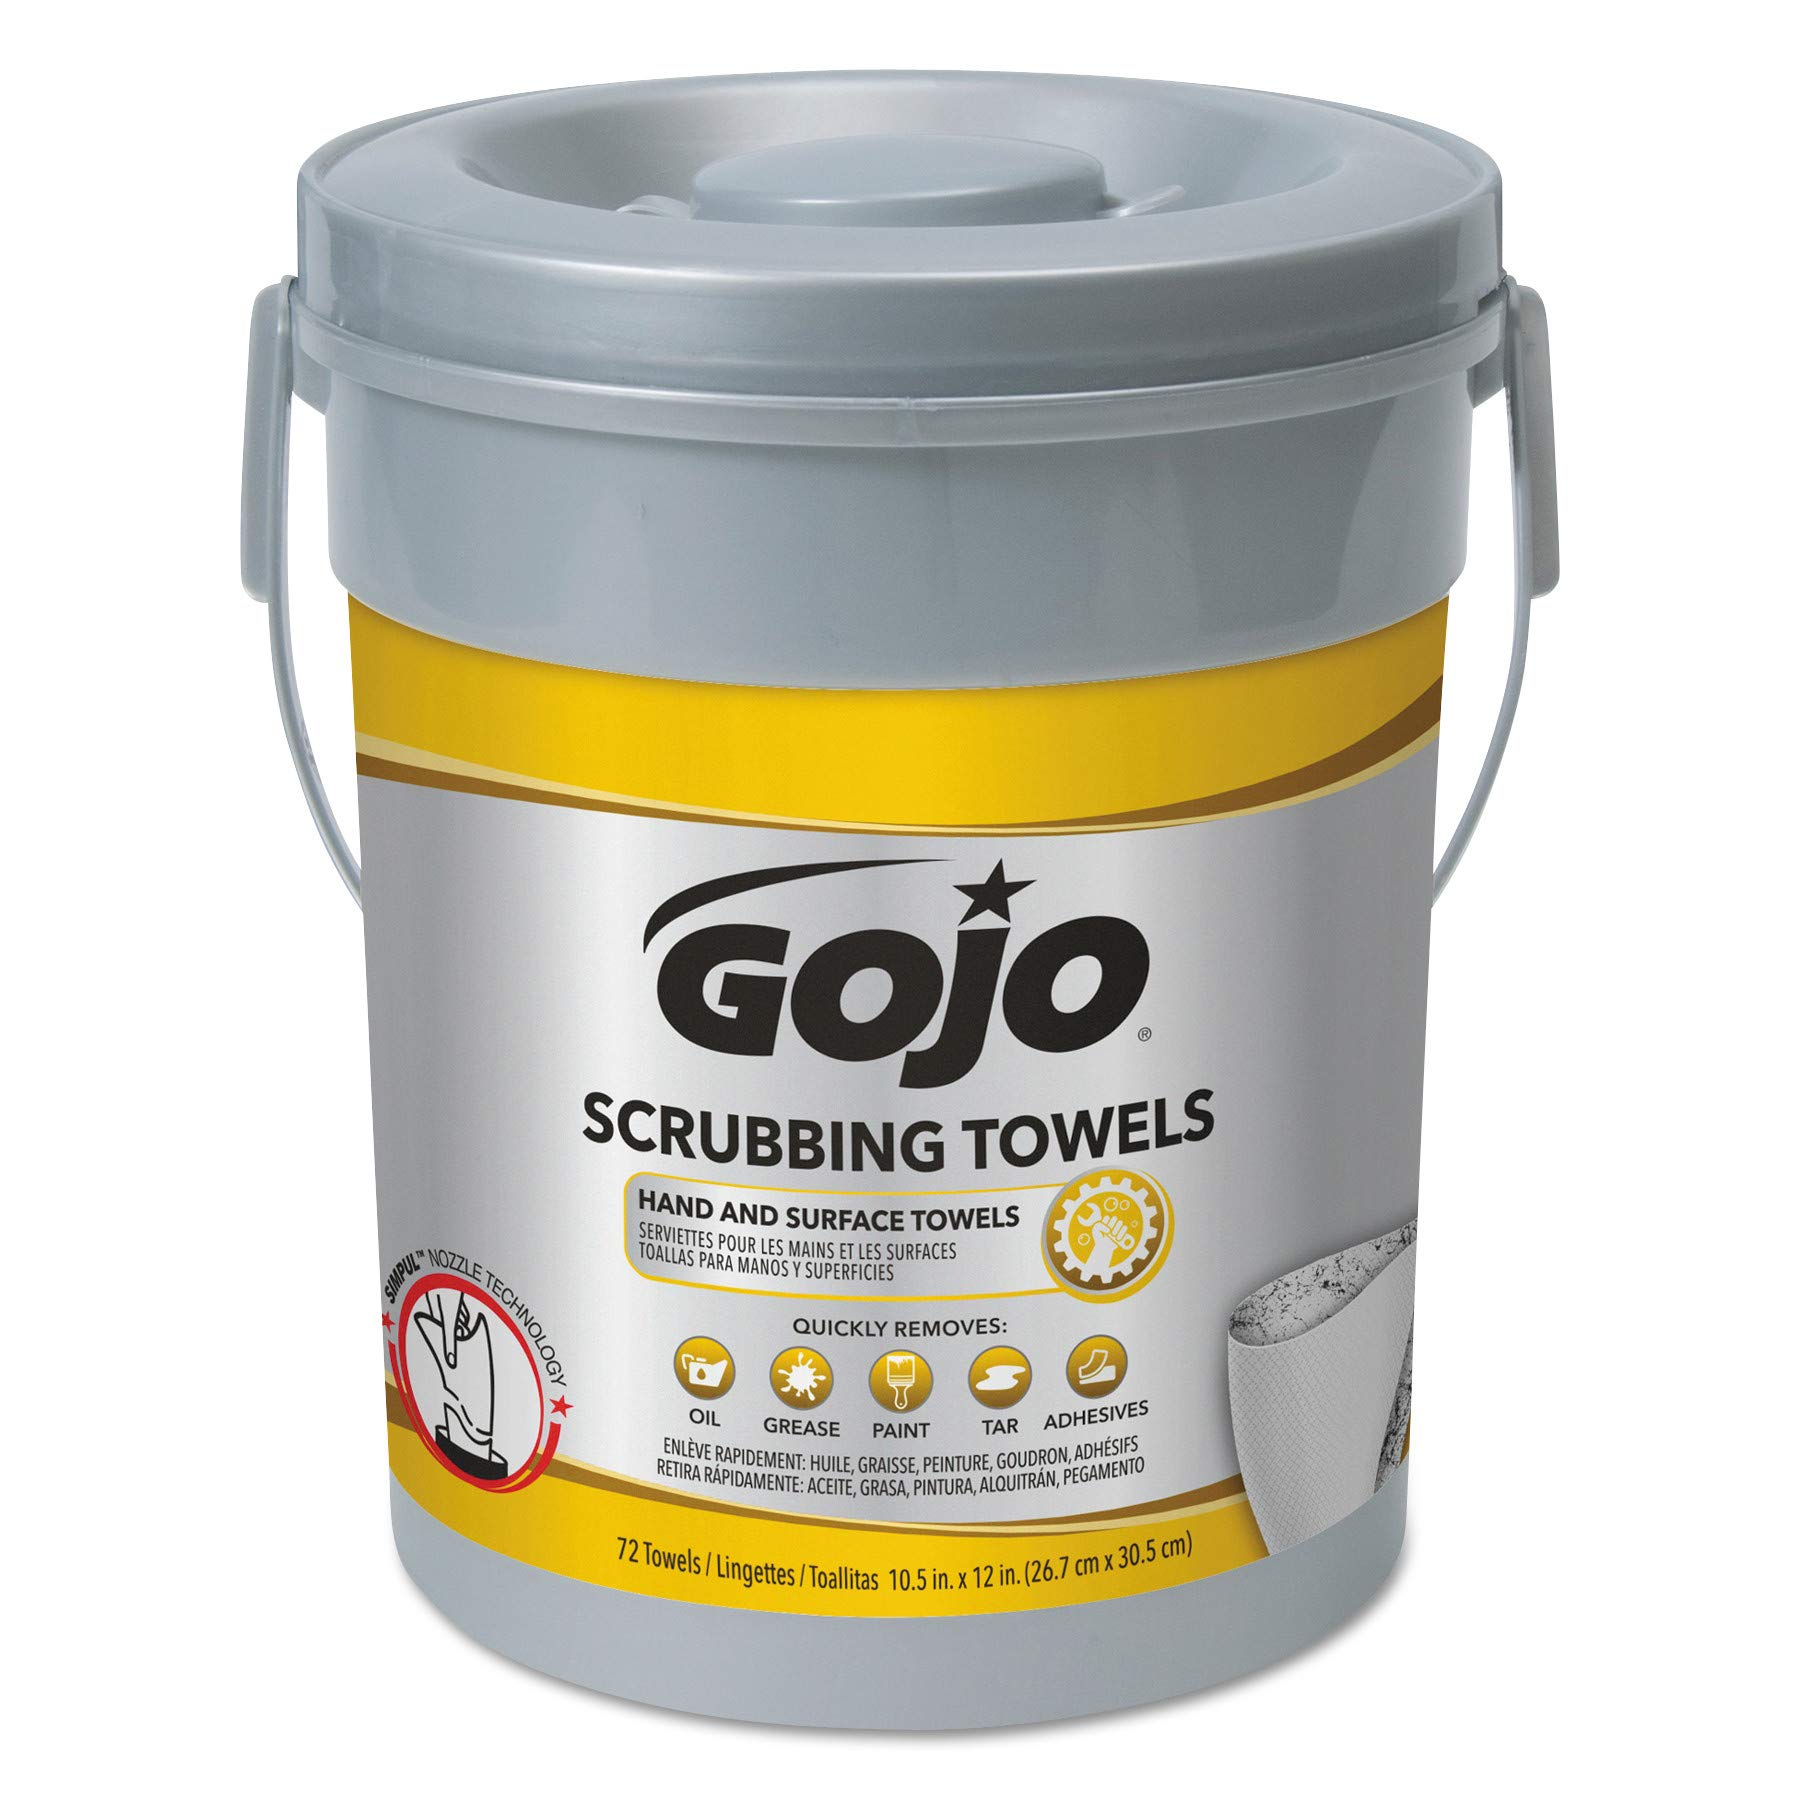 GOJO 639606 Scrubbing Towels, Hand Cleaning, Silver/Yellow,10.5x12.25, 72 per Canister (Case of 6)